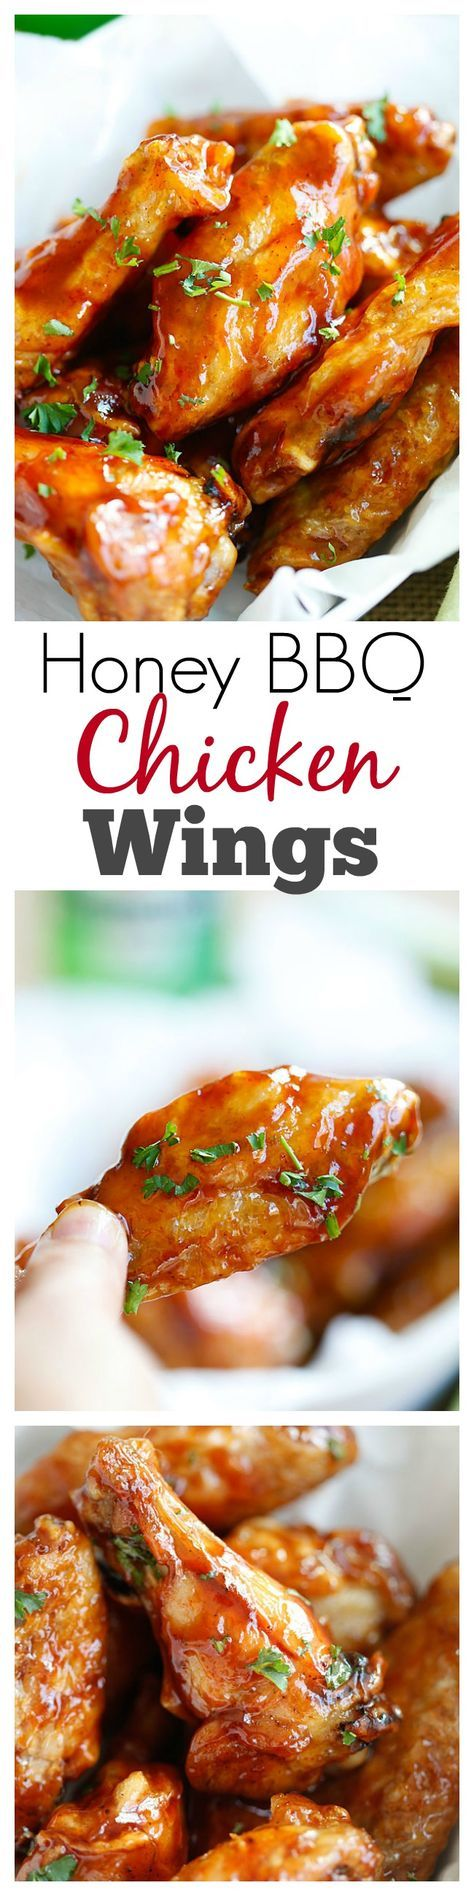 Honey BBQ Chicken Wings - 3 ingredients, no deep-frying, the easiest and crispiest chicken wings ever with delicious and sticky sweet honey bbq sauce | rasamalaysia.com